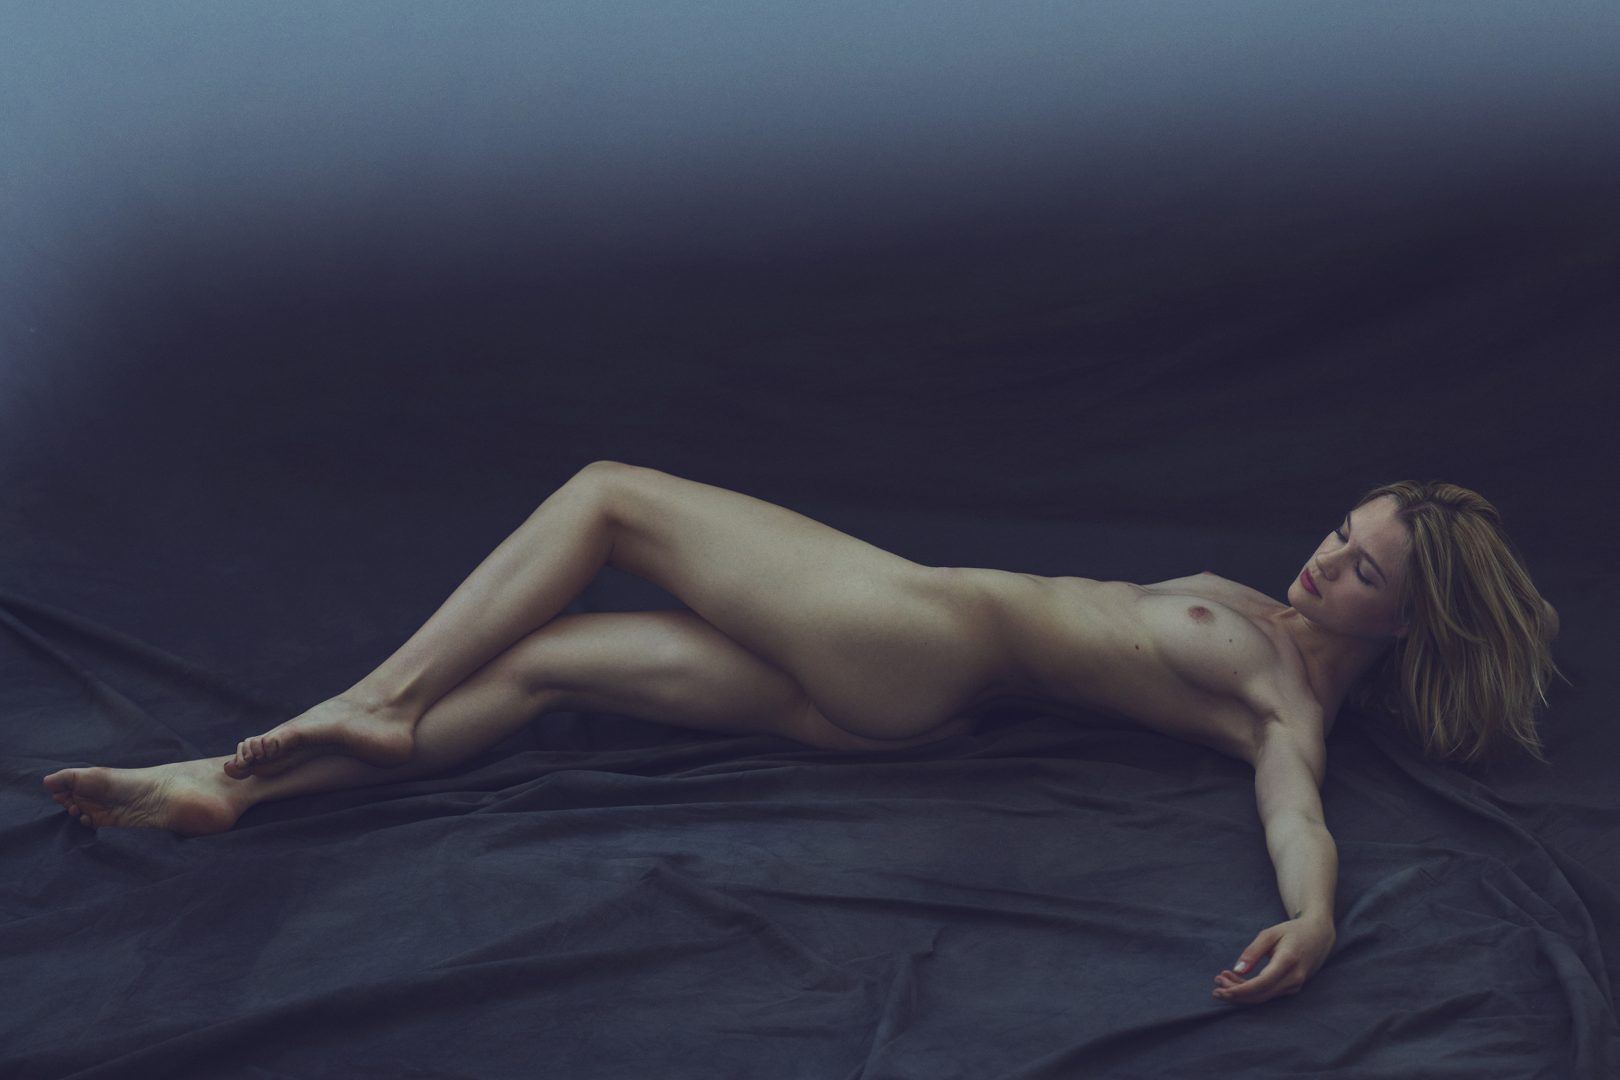 Naked girl lying on floor by Stefan Rappo